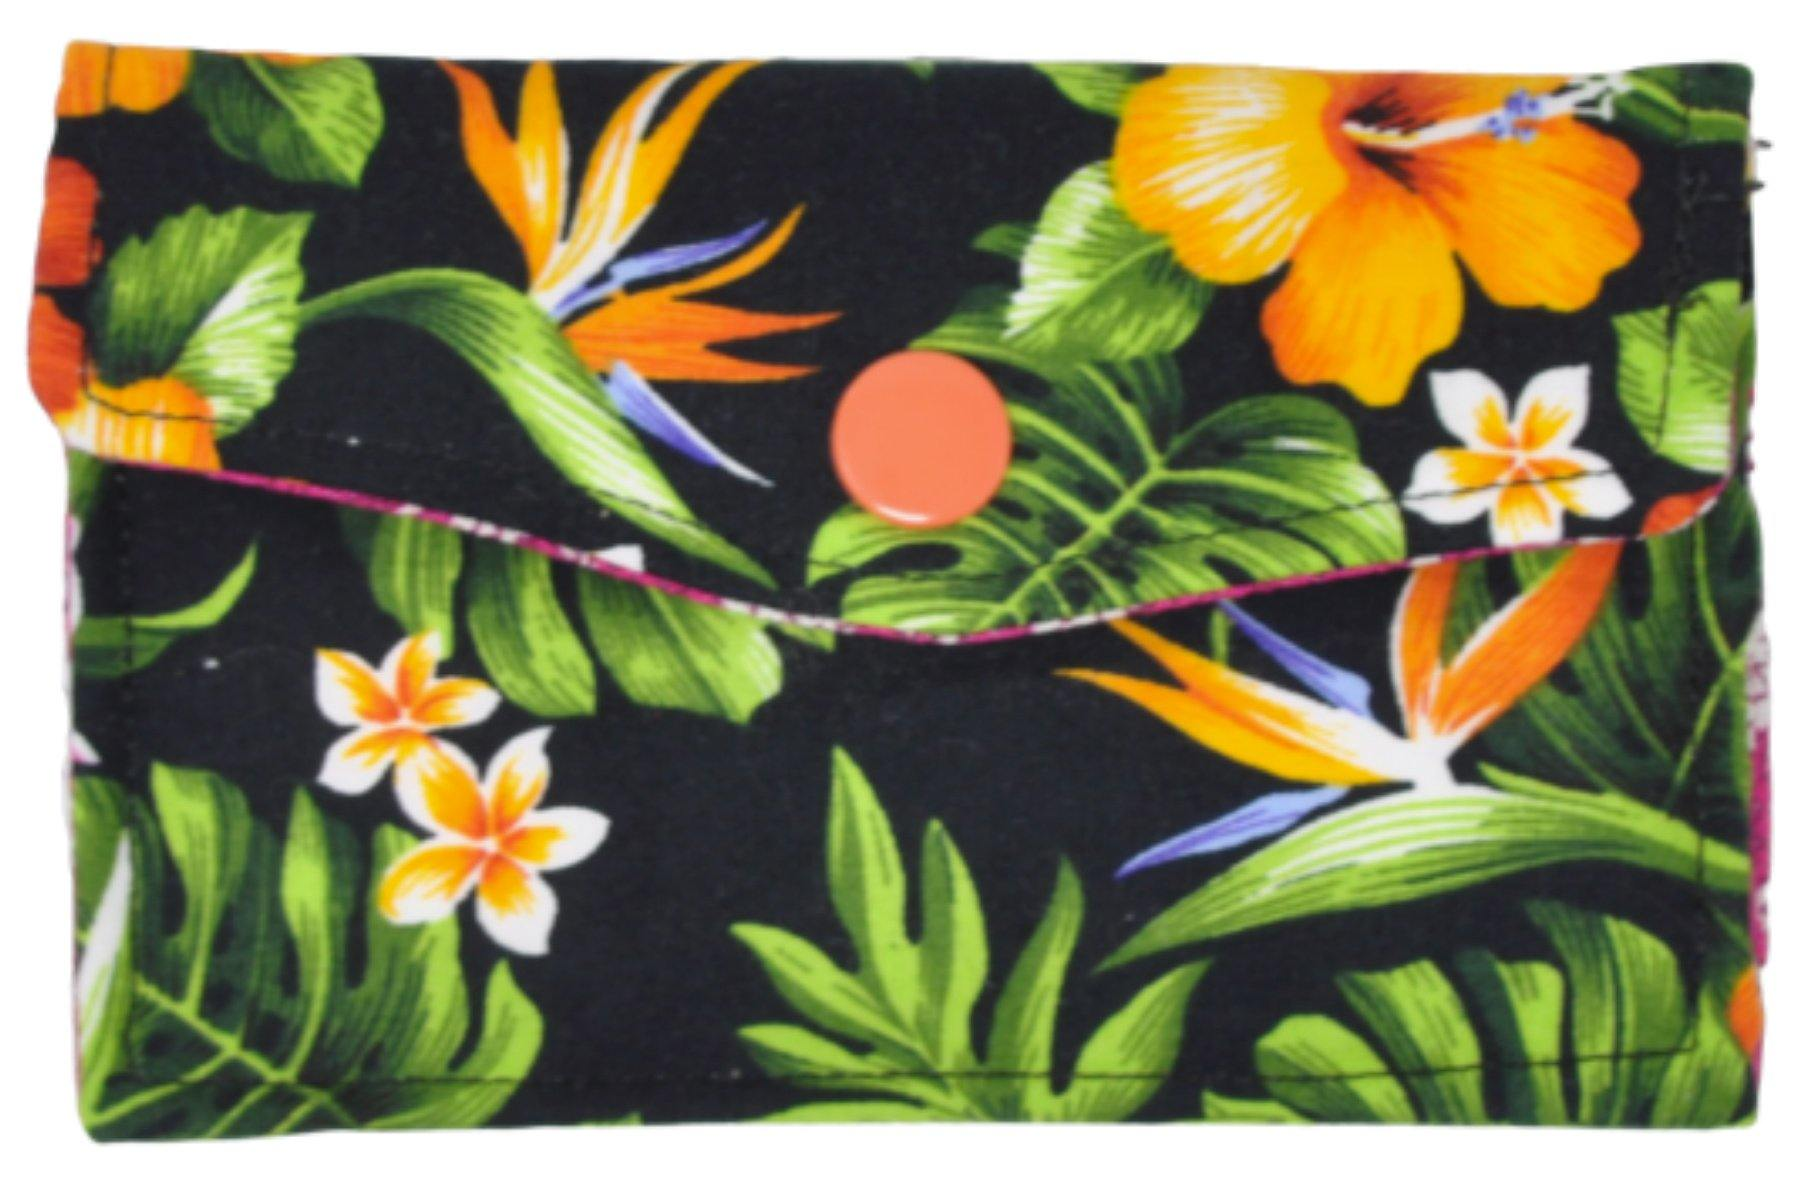 Passionfruit Panache Card Holder - Momako Designs